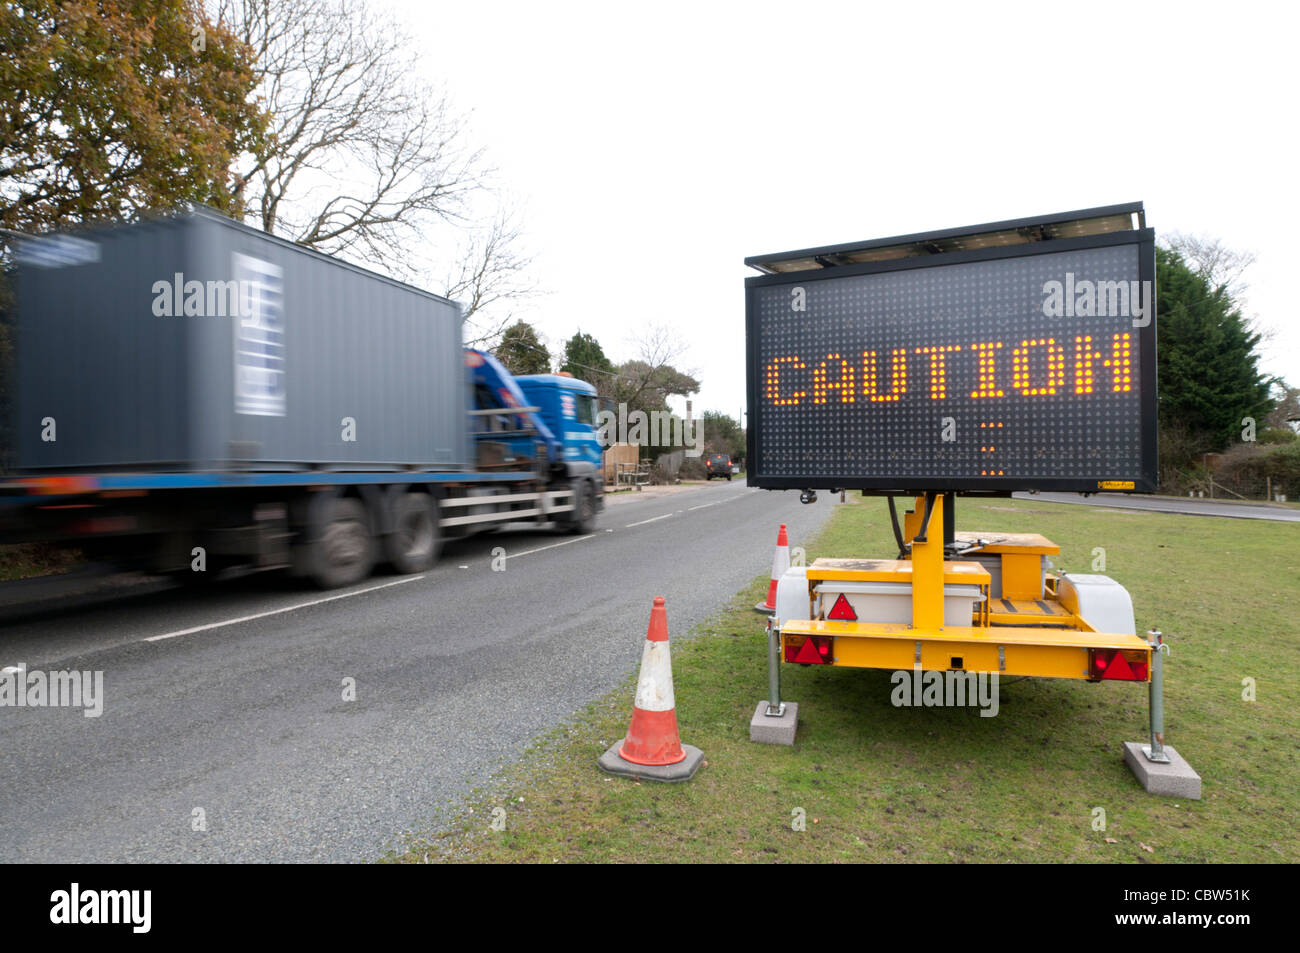 Matrice Mobile Road Sign Photo Stock